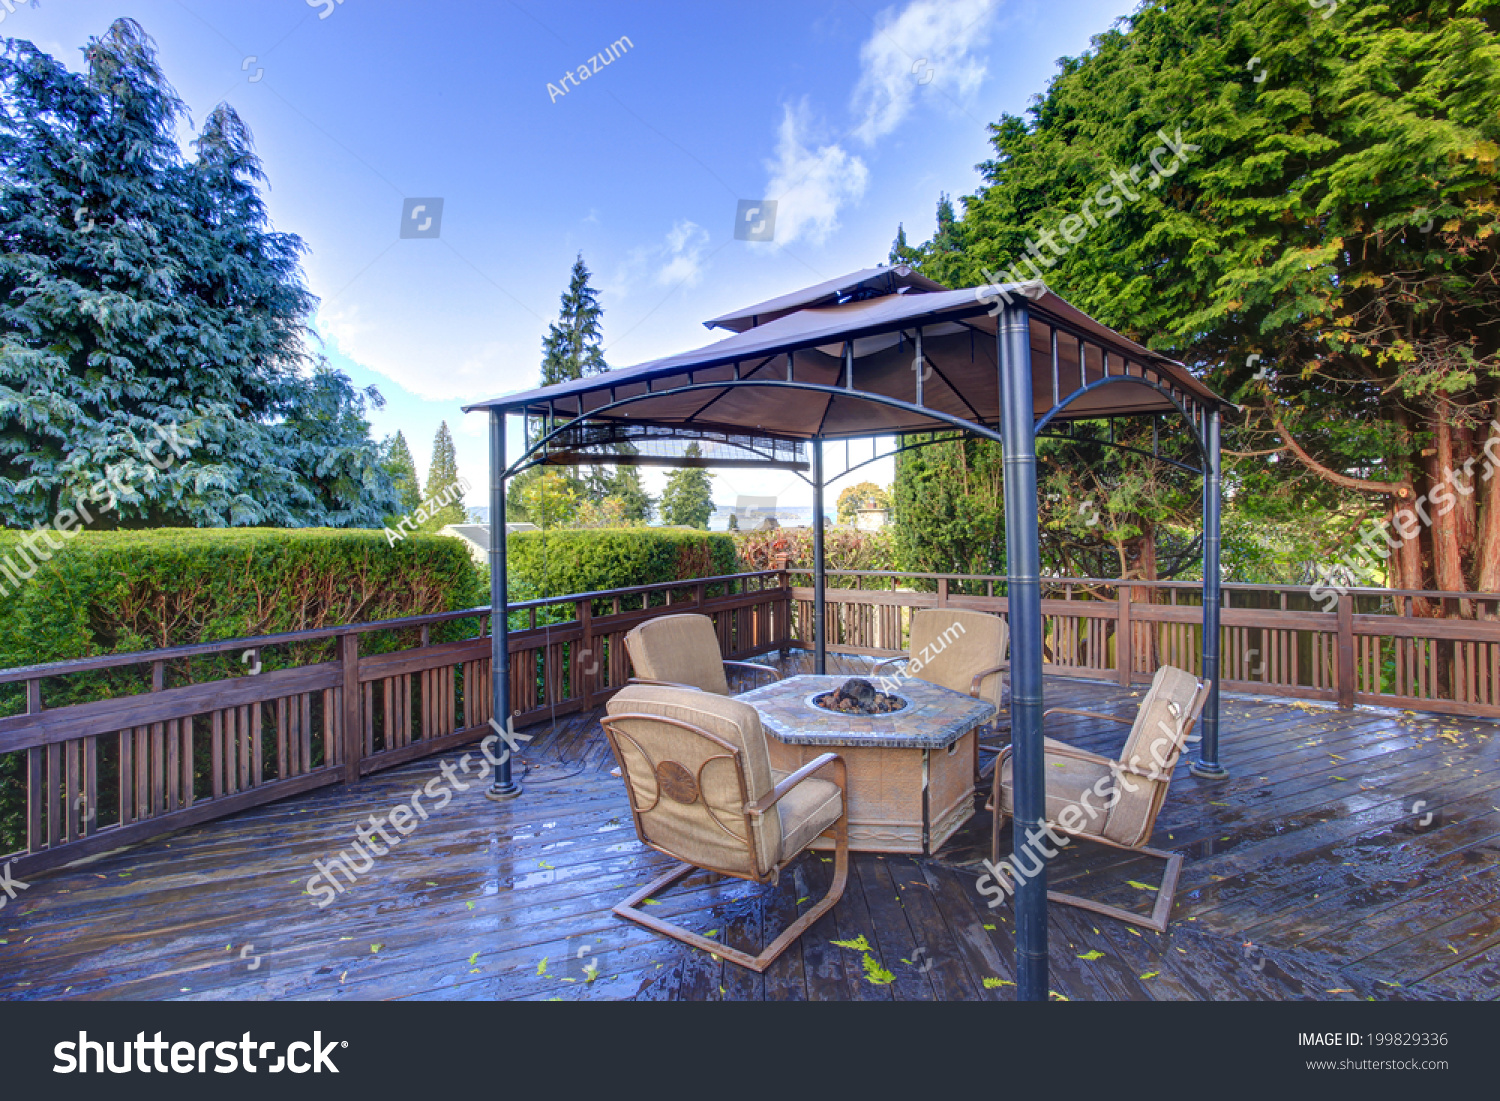 Wooden Deck Railings Gazebo Fire Pit Stock Photo Edit Now 199829336